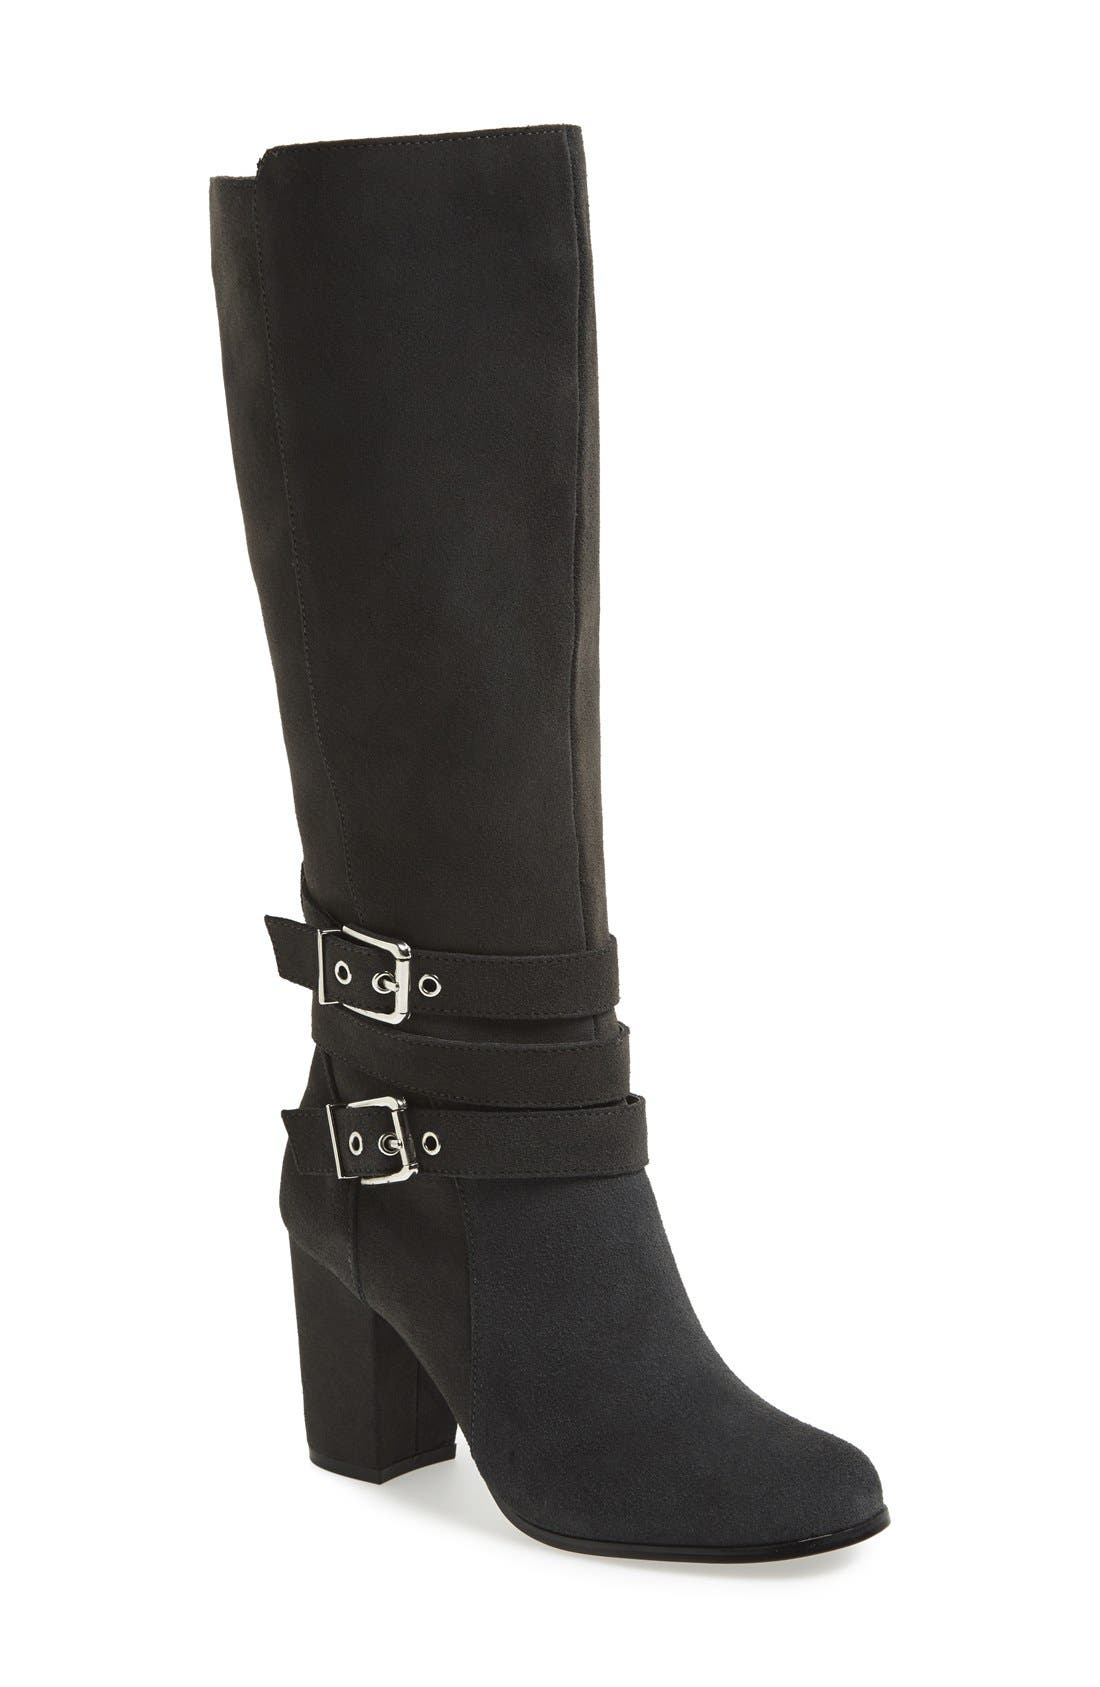 Alternate Image 1 Selected - Charles by Charles David 'Valence' Knee High Suede Boot (Women)